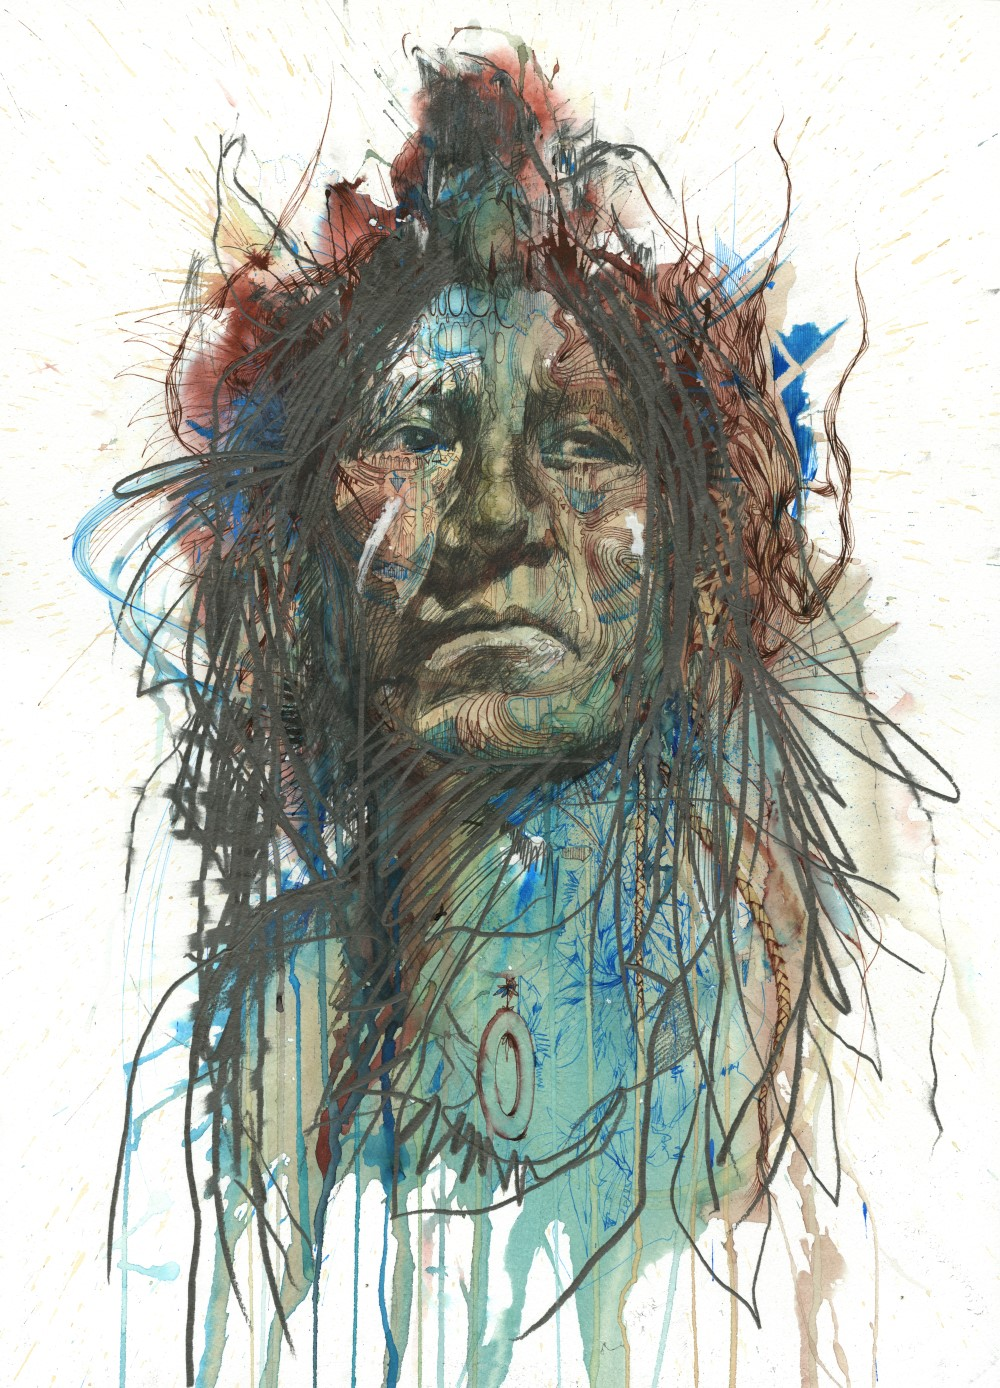 Wild Frontier by Carne Griffiths